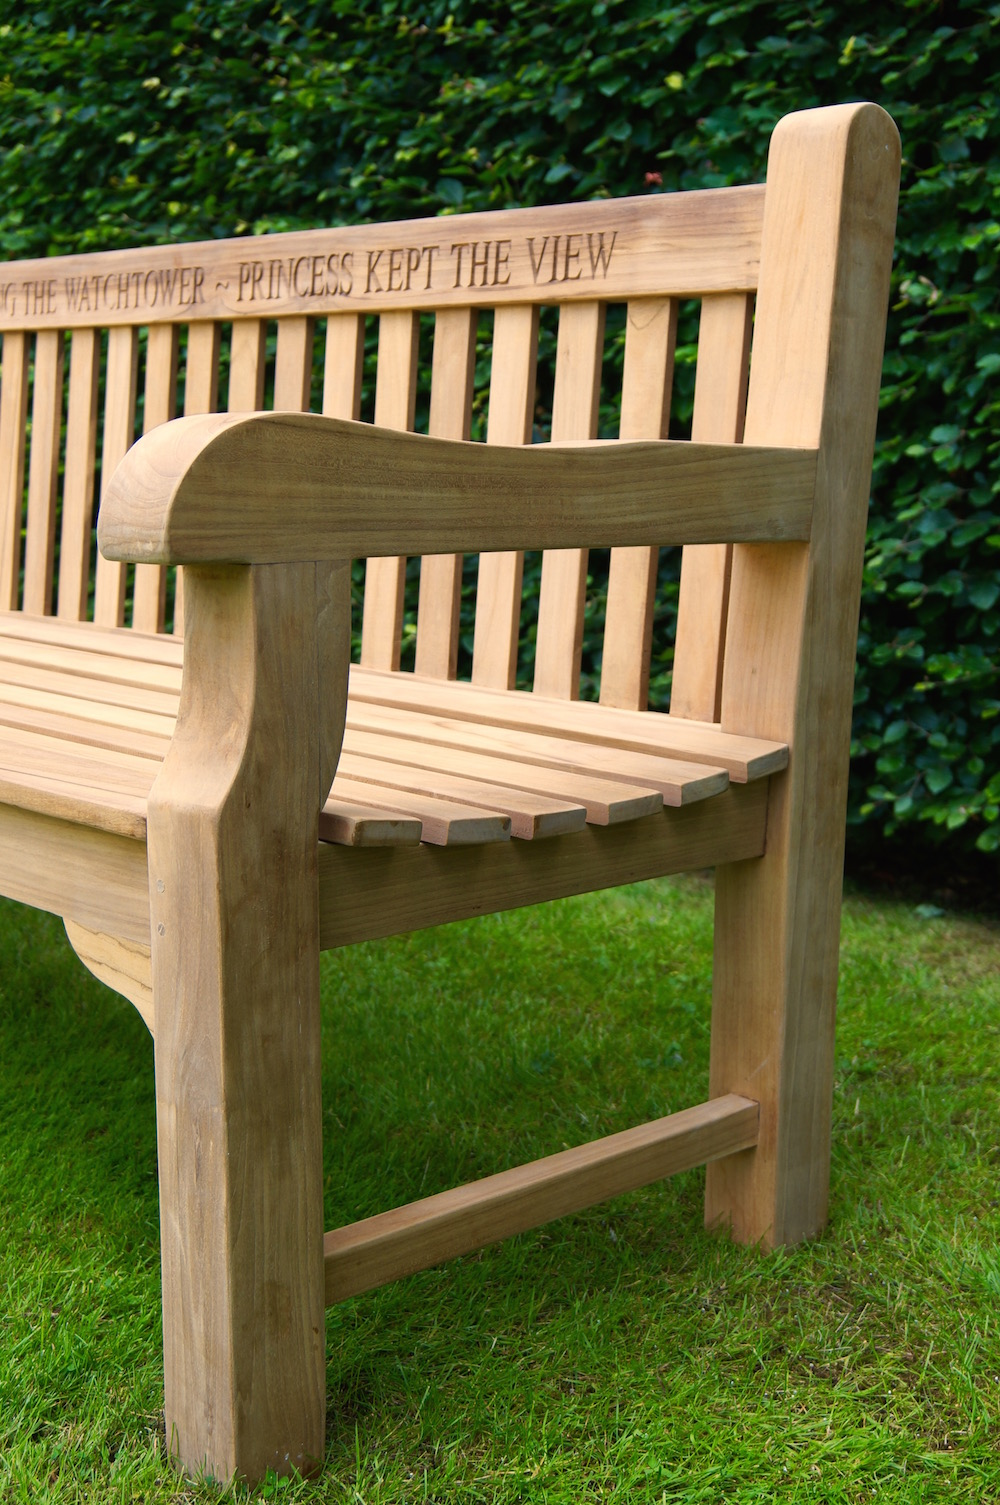 Marvelous Our Park Land Personalised Wooden Benches Caraccident5 Cool Chair Designs And Ideas Caraccident5Info